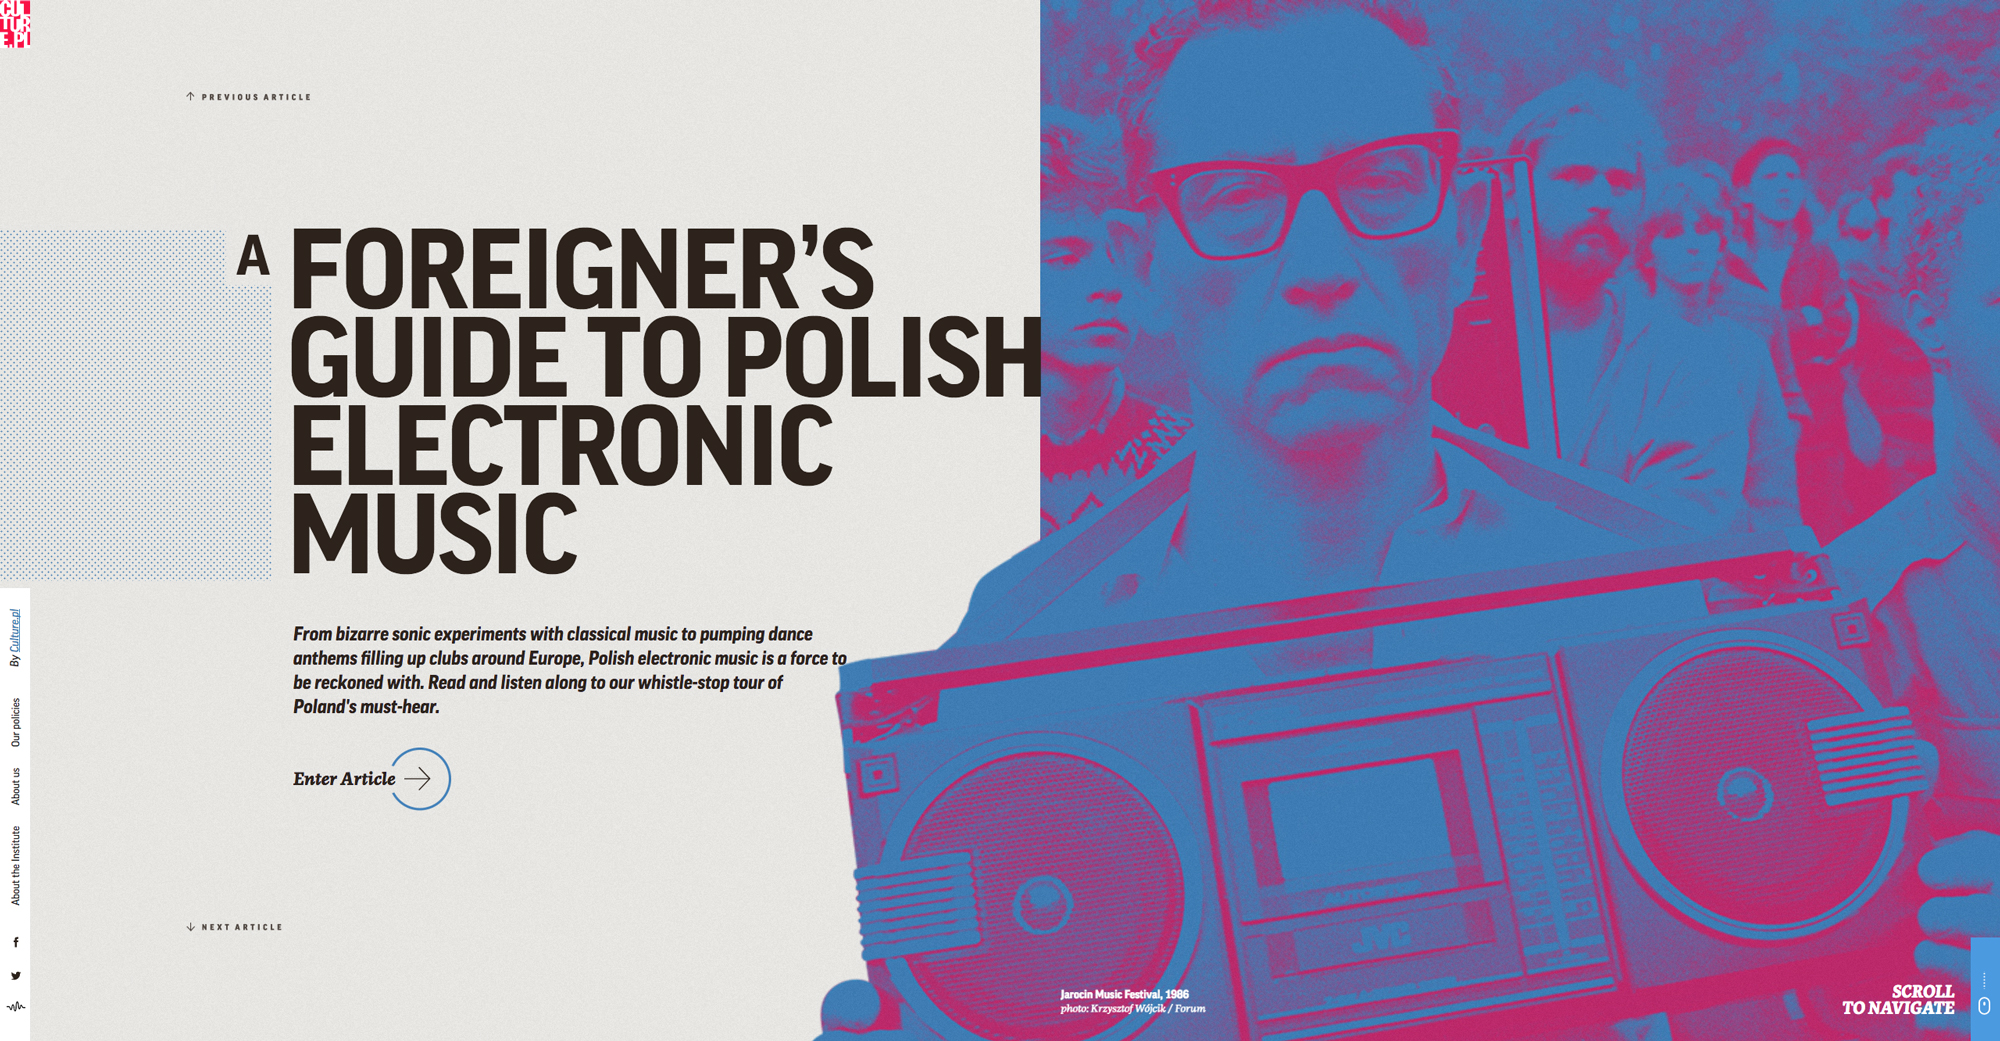 Tendances design web 2017 - Culture.pl - A foreigner's guide to - IDEA Communications